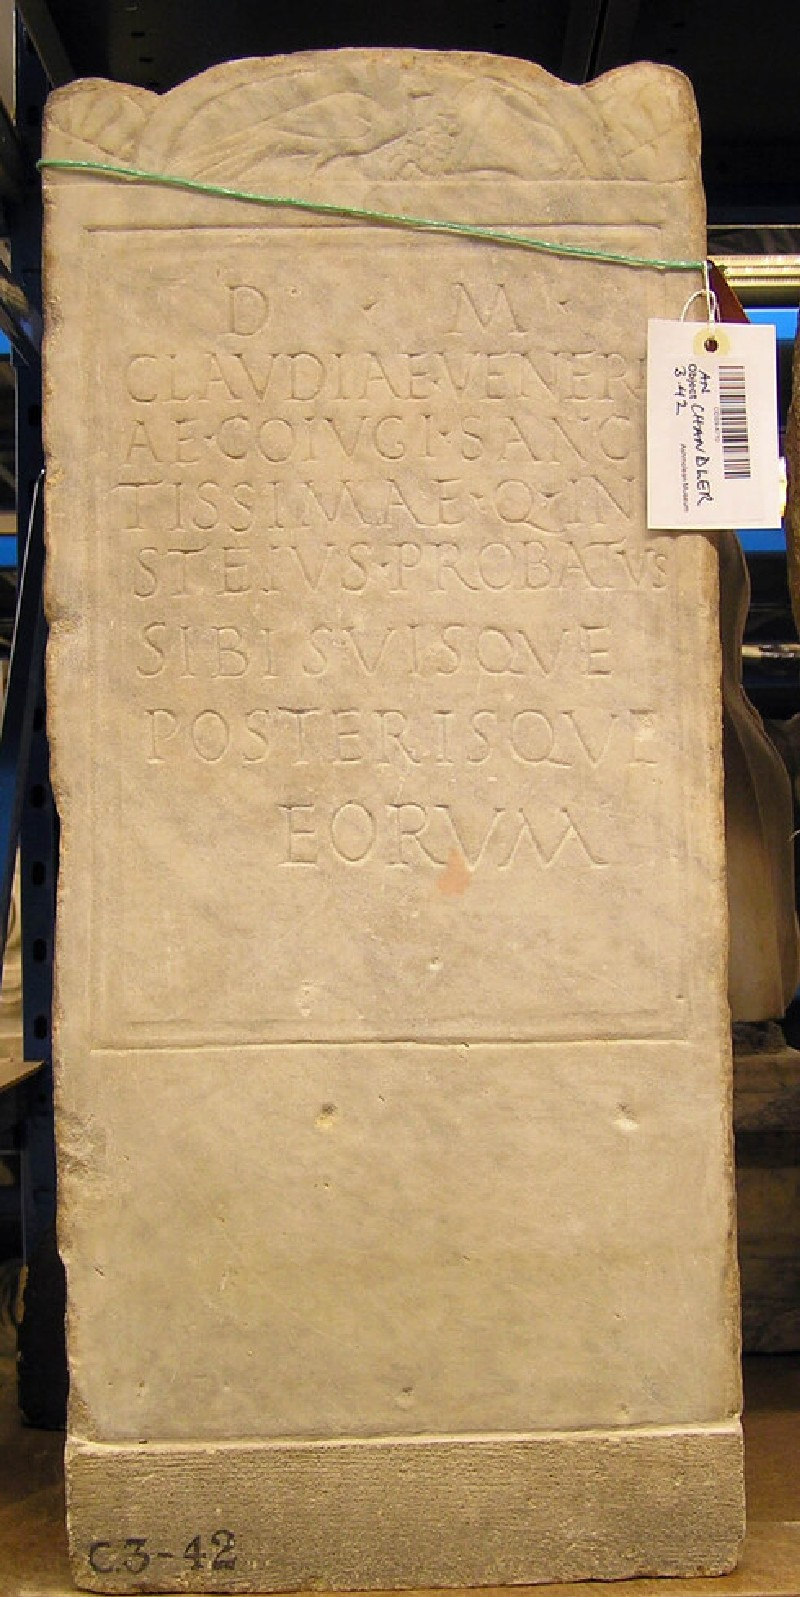 Stele with Latin inscription for CLAUDIA VENERIA (ANChandler.3.42, record shot)